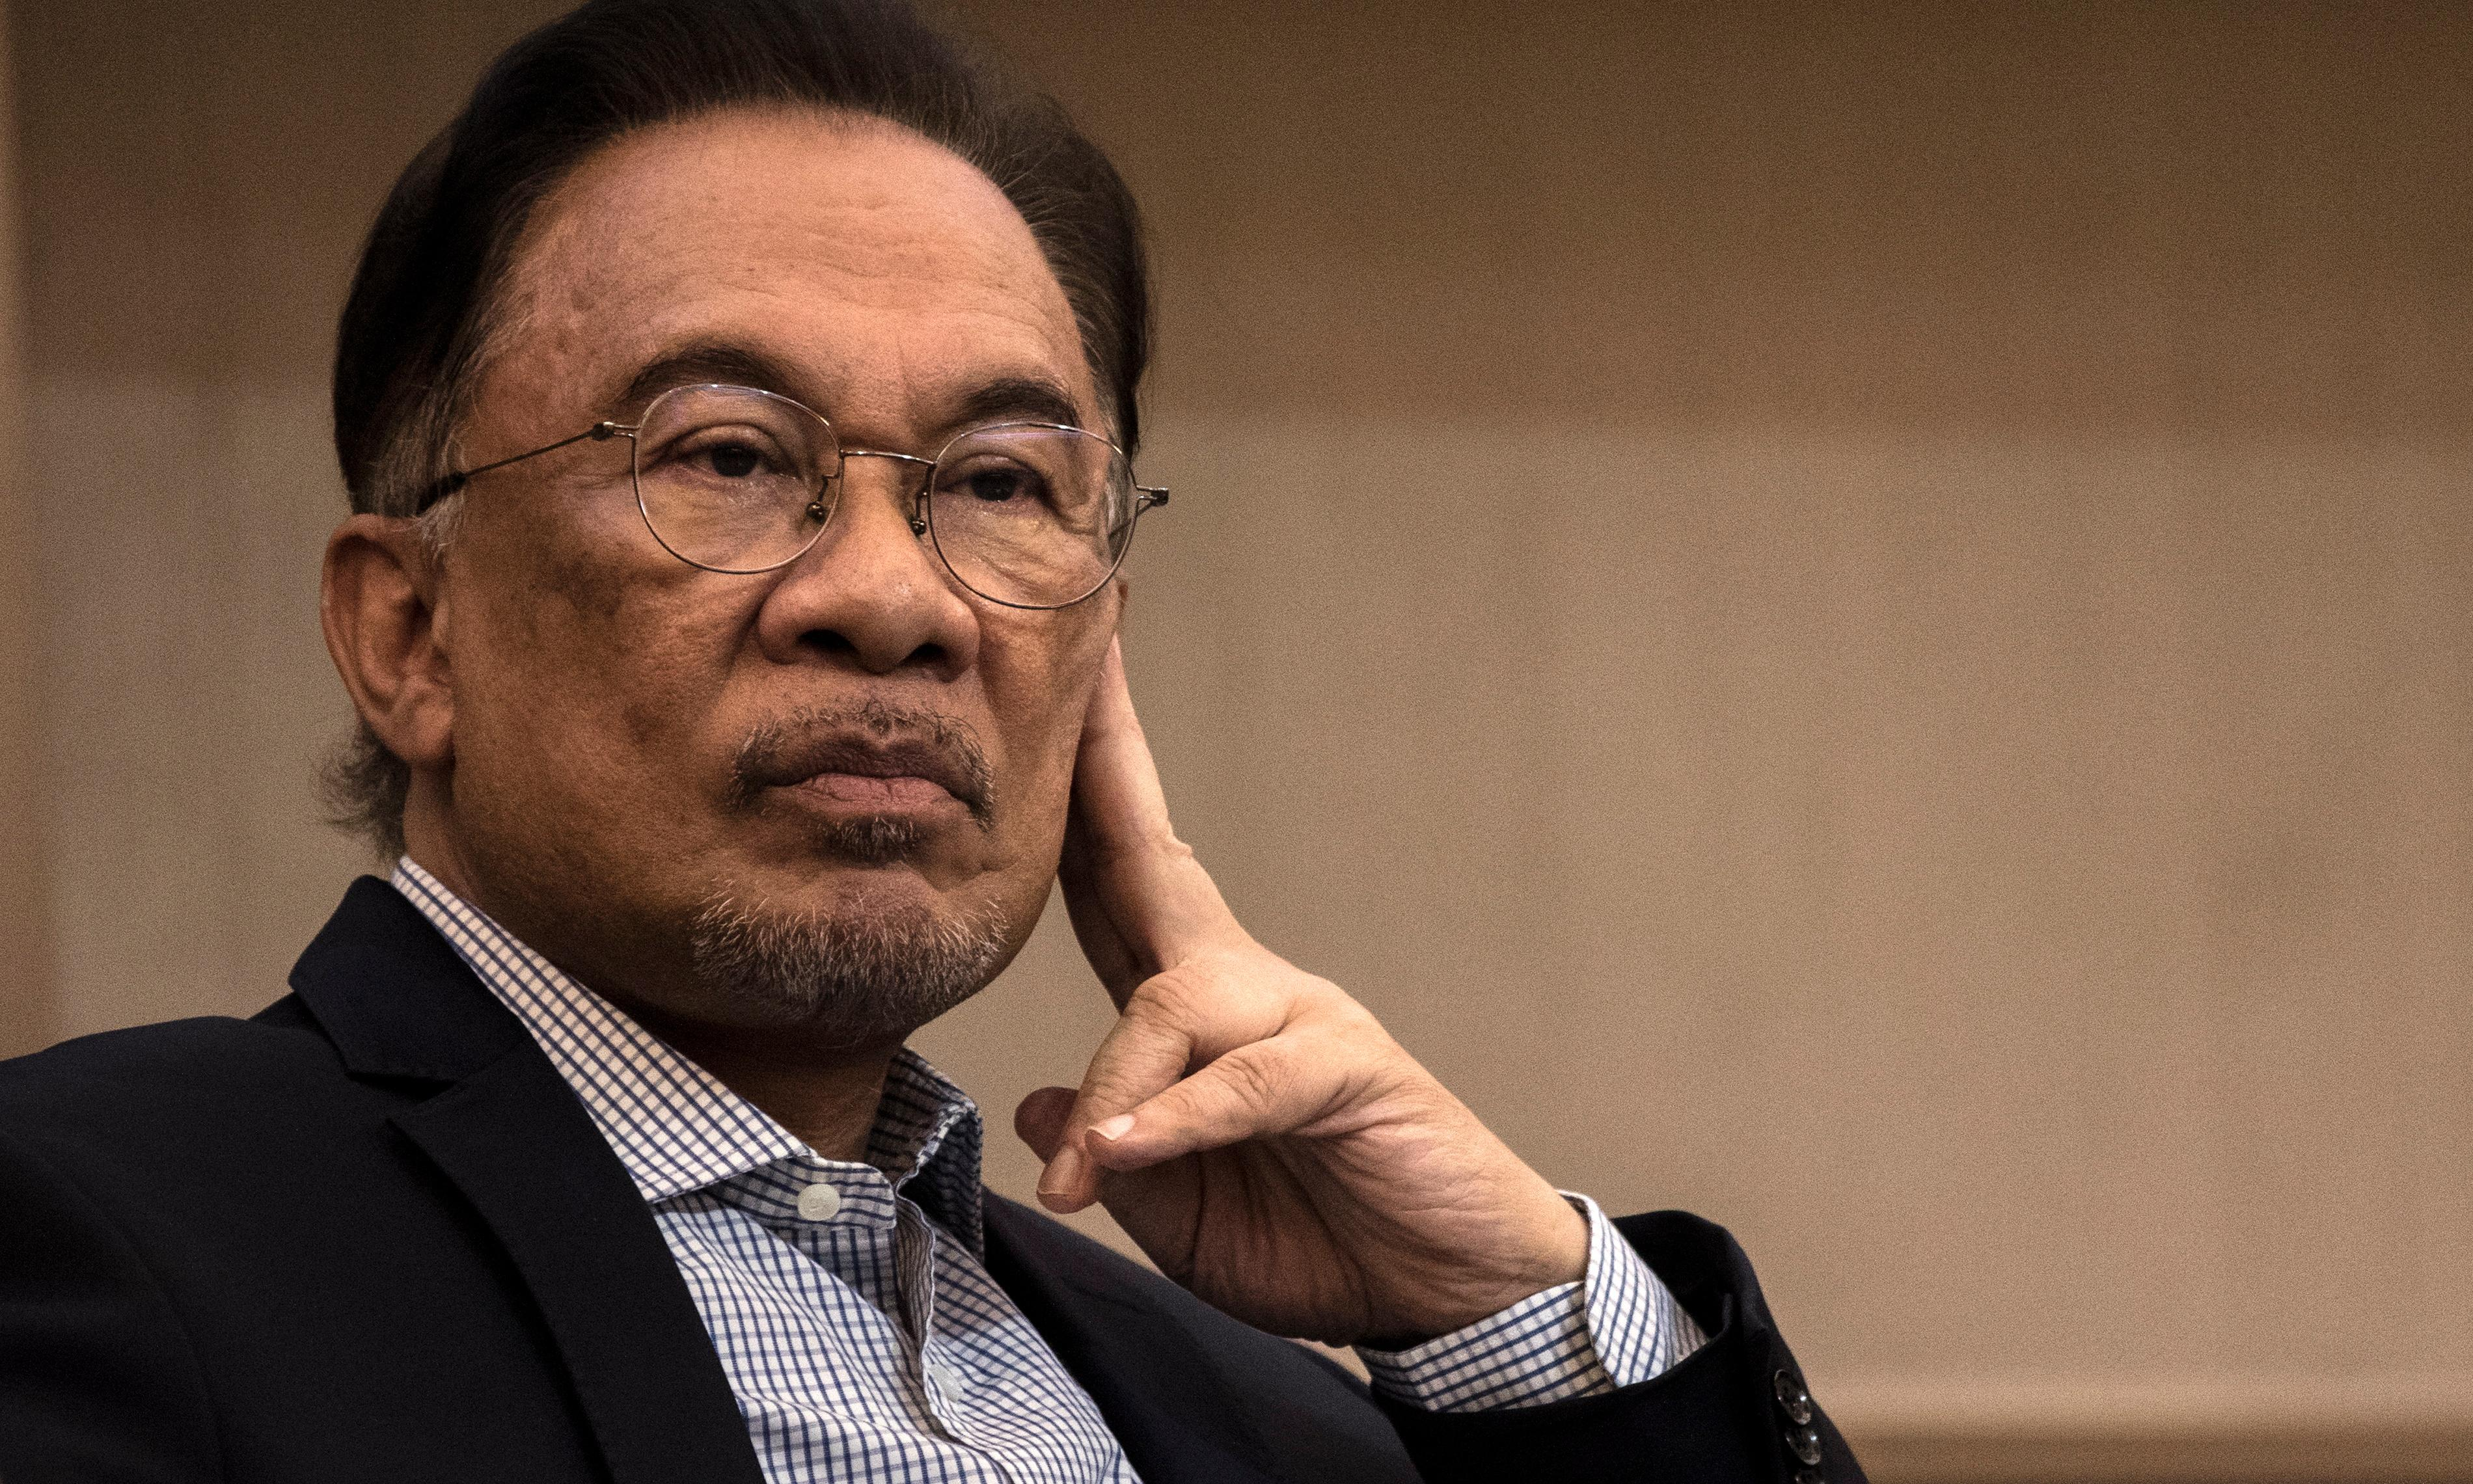 Anwar Ibrahim decries 'traitors' amid cracks in deal to make him Malaysia's next PM